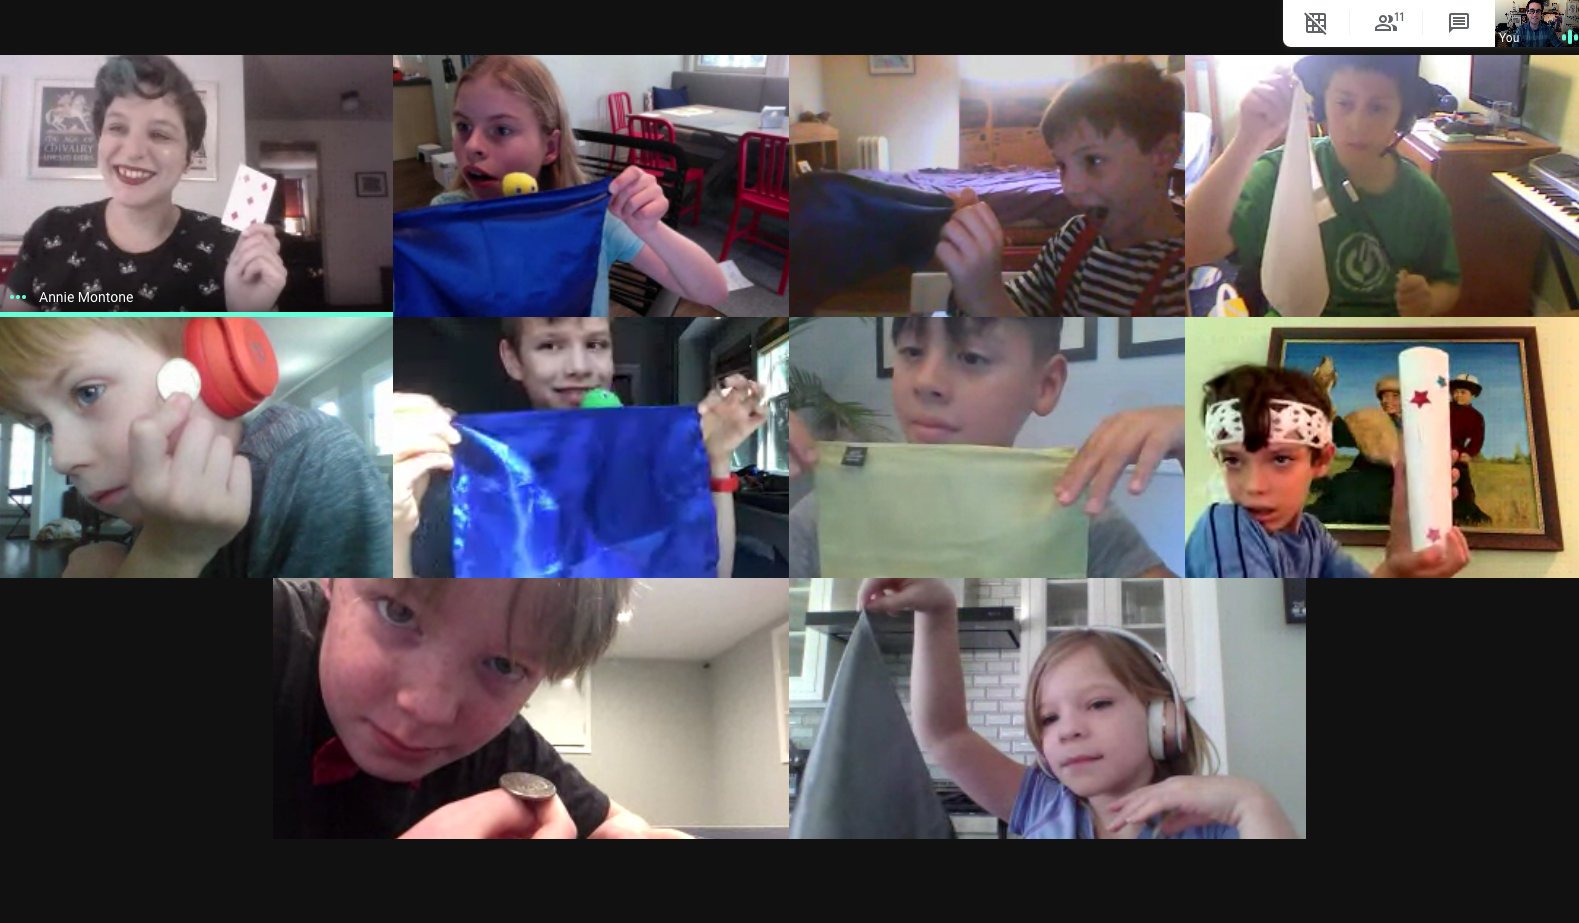 A grid of students taking virtual summer camp. They are all posing with their favorite props.